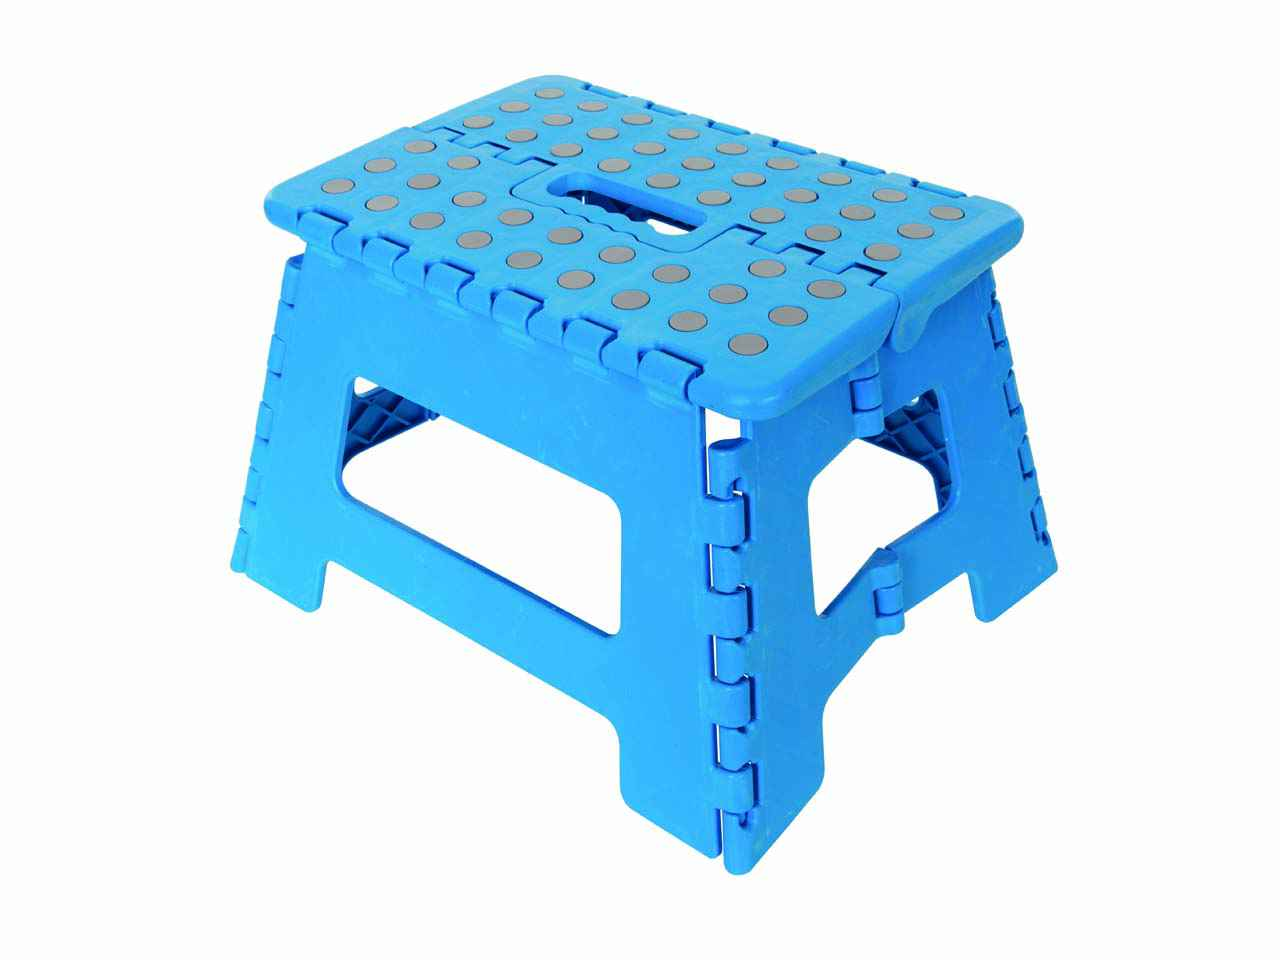 Silverline 968731 Folding Step Stool 150kg